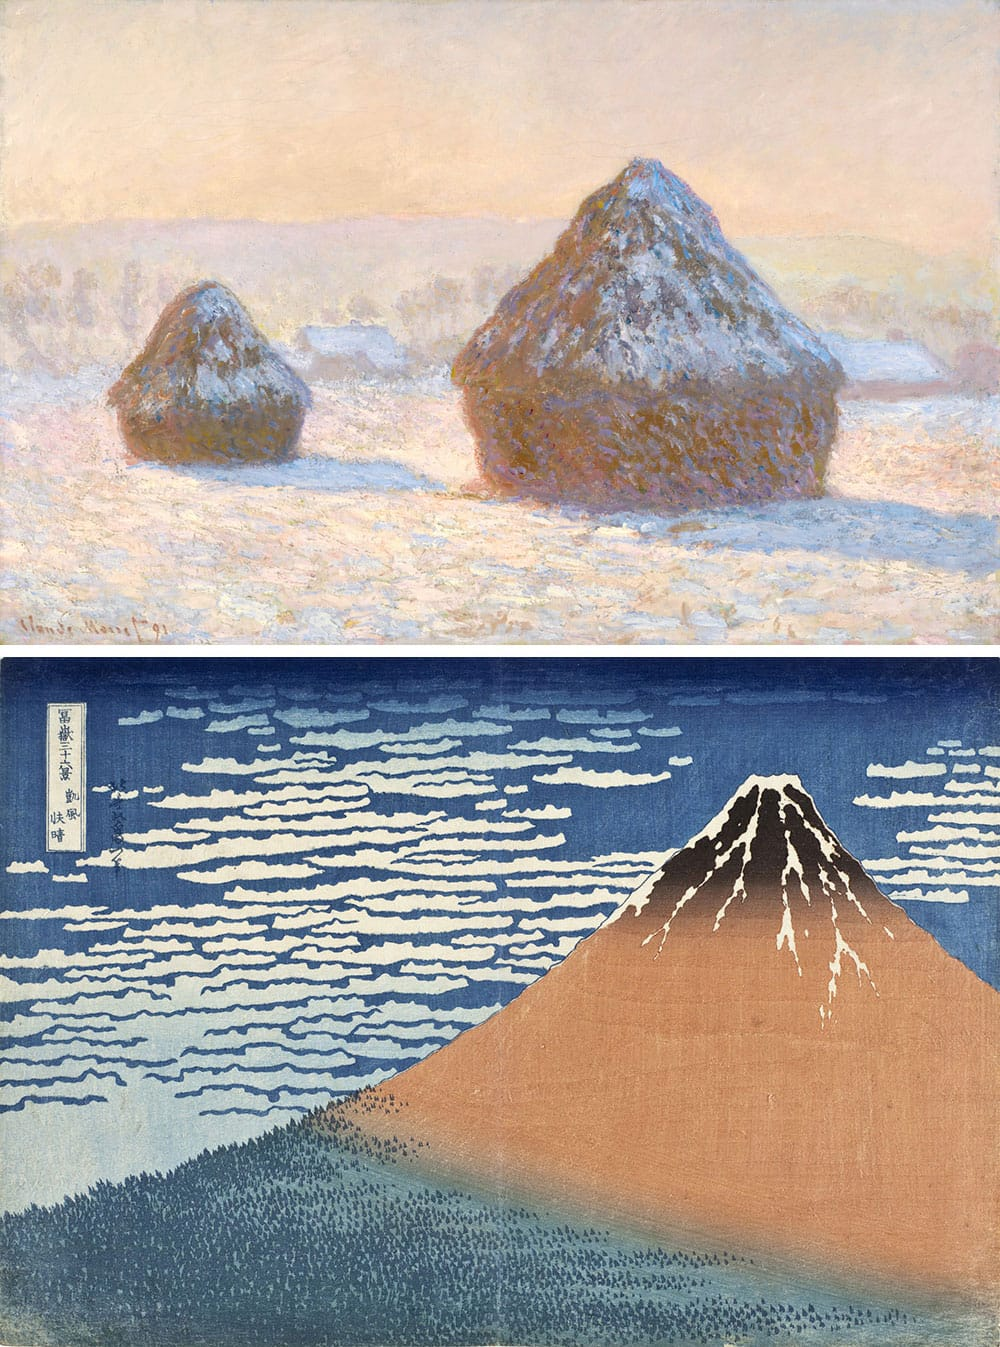 Claude Monet, Wheatstacks, Snow Effect, Morning (top). 1891. Oil on canvas. Courtesy The J. Paul Getty Museum. Katsushika Hokusai, South Wind, Clear Dawn (bottom), from a series of Thirty-six views of Mt. Fuji. 1830-1831. Color woodblock print. Courtesy the Los Angeles County Museum of Art.